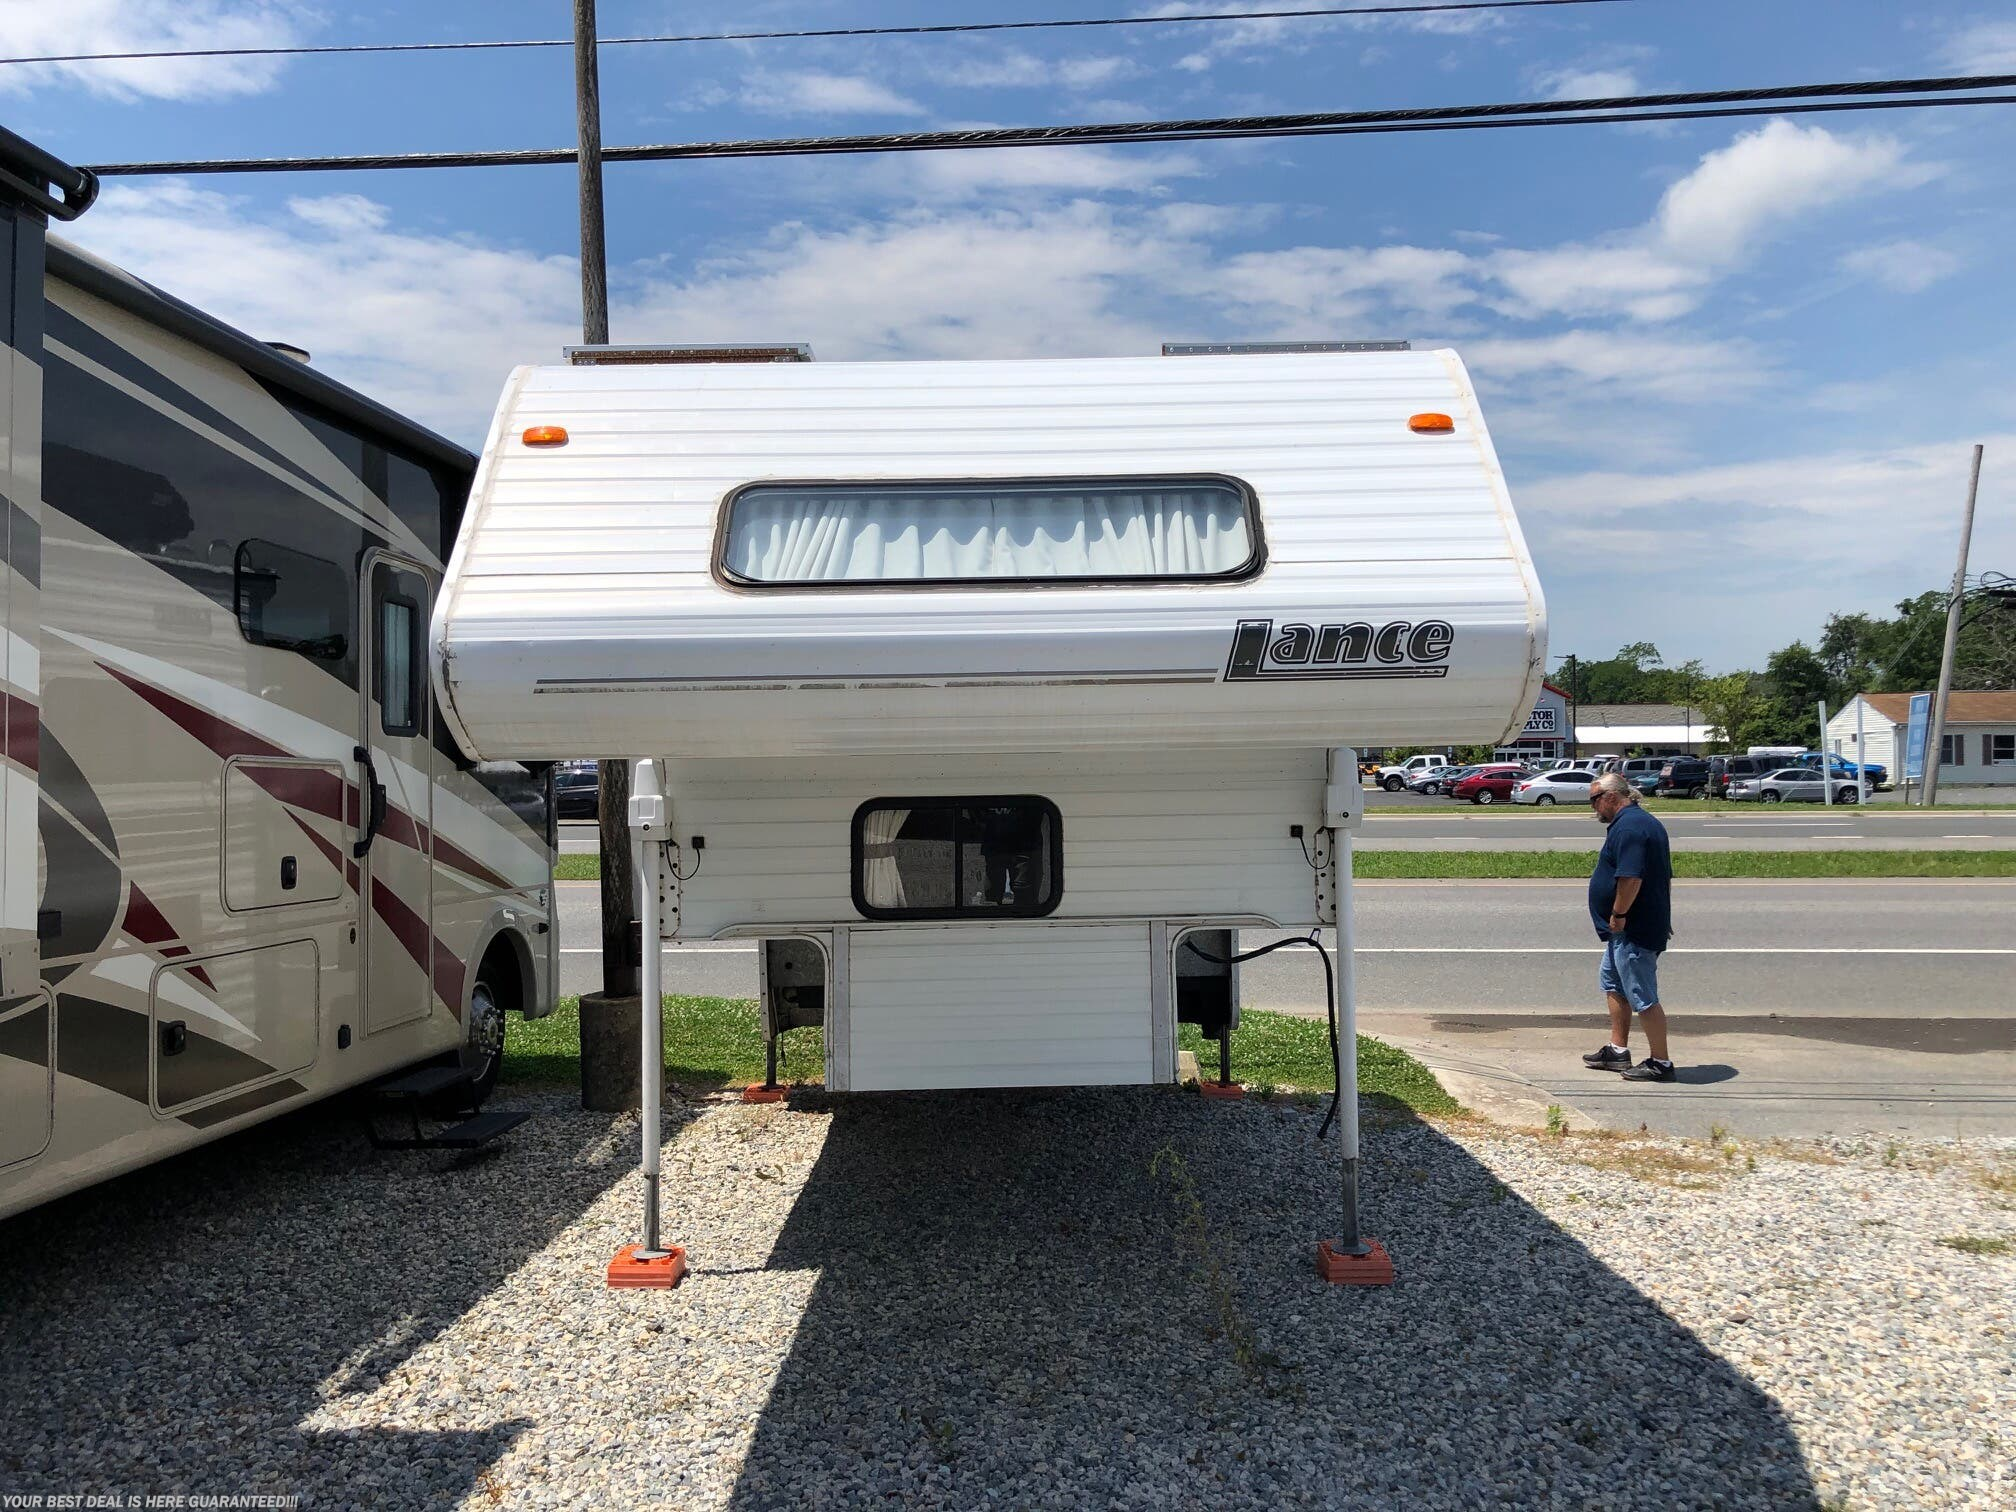 2005 Lance RV 915 for Sale in Smyrna, DE 19977 | UA